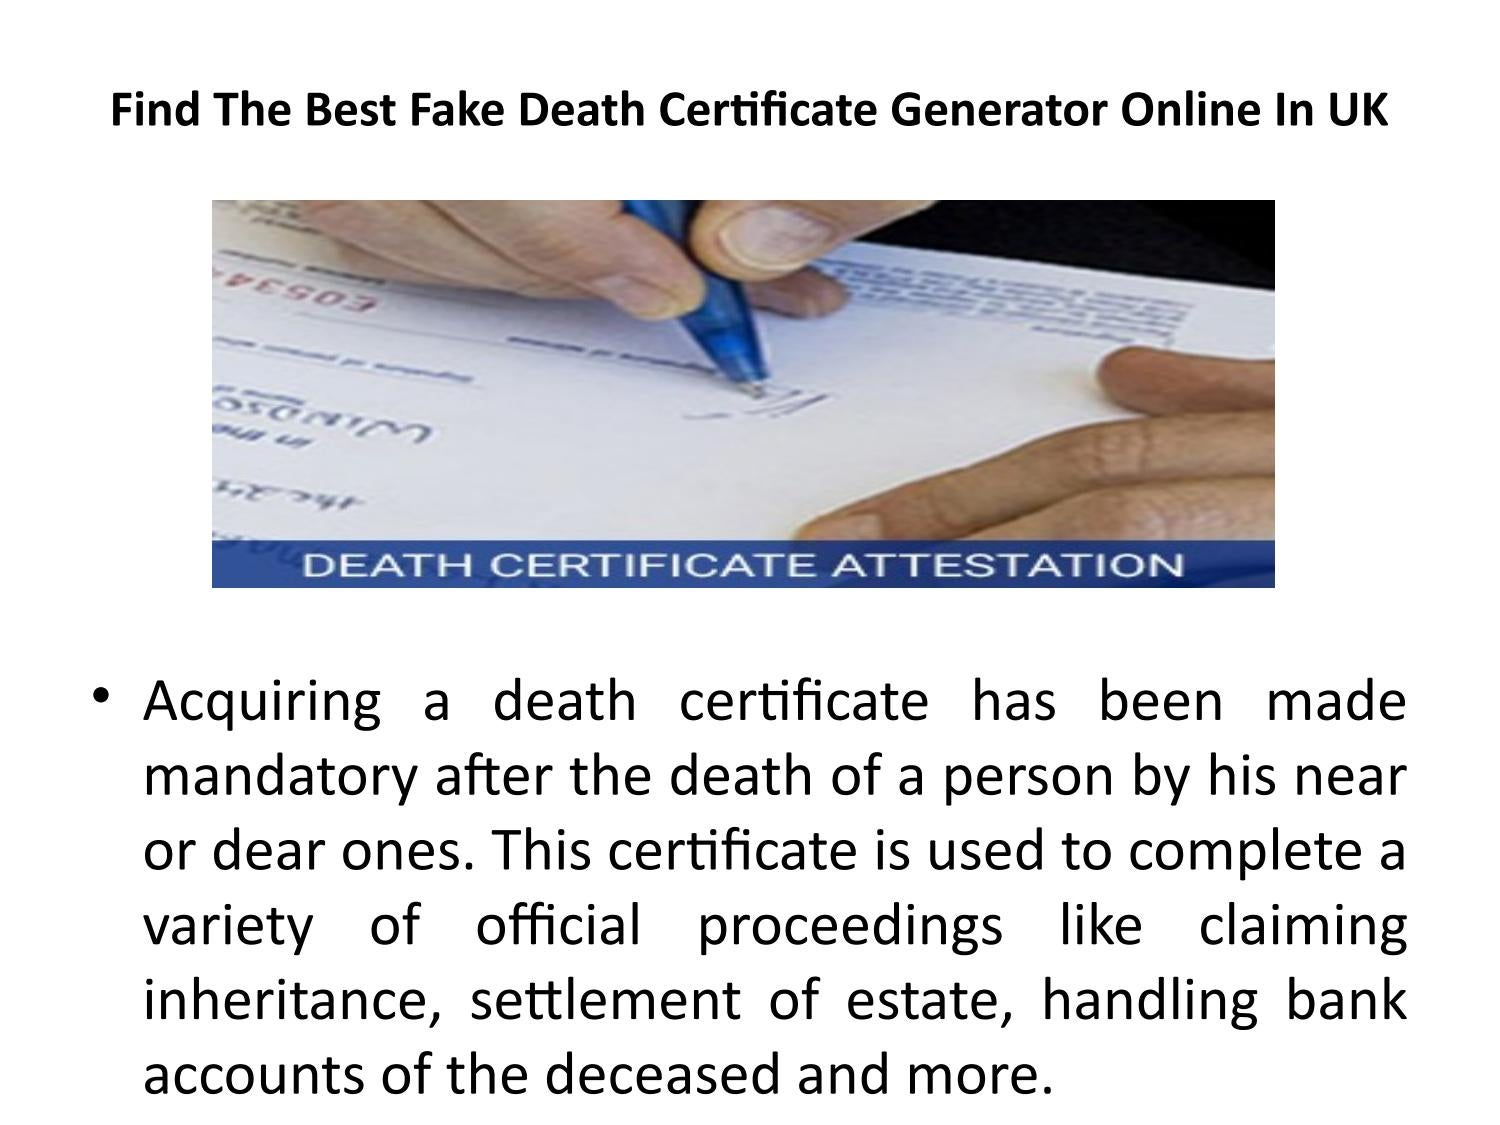 Find The Best Fake Death Certificate Generator Online In Uk By